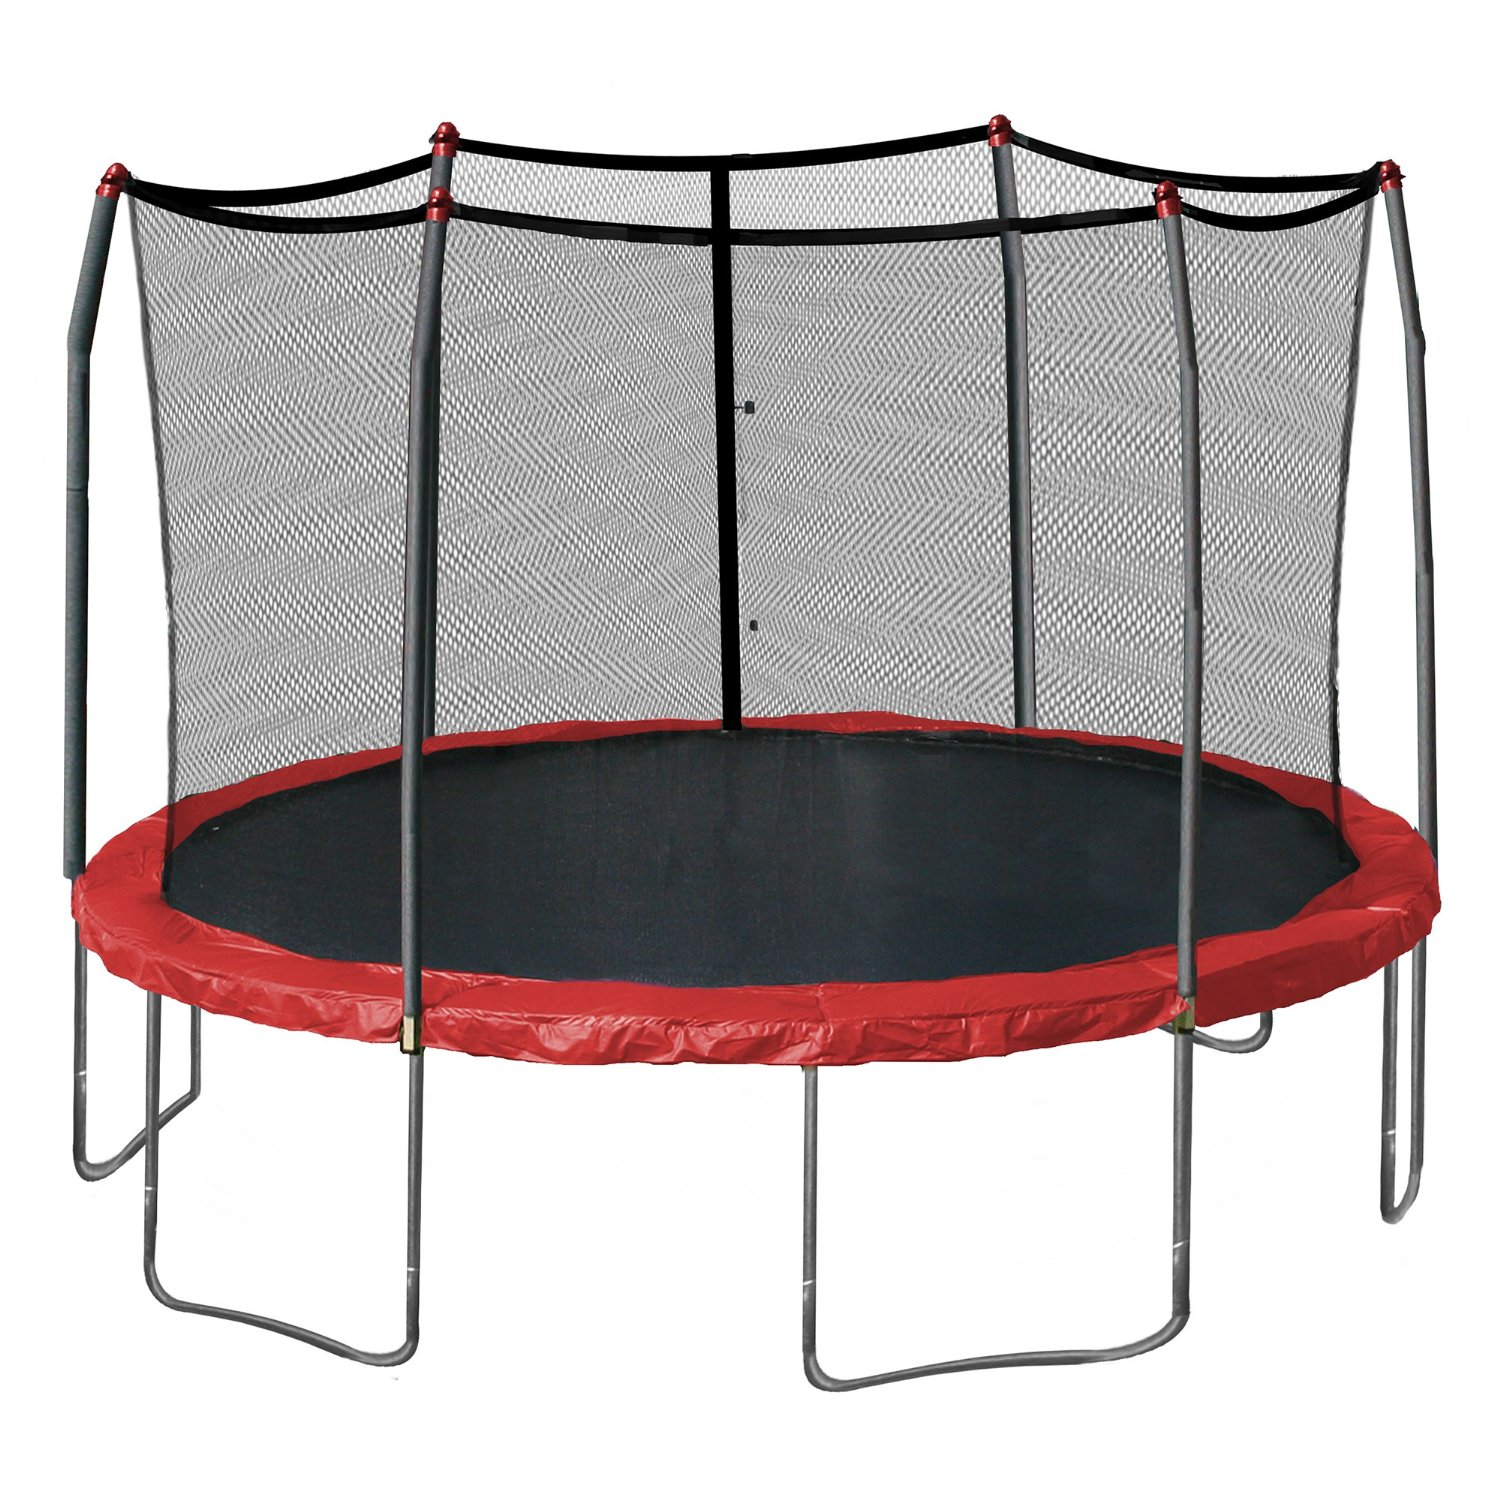 Skywalker 15-Feet Round with Enclosure and Spring Pad Review